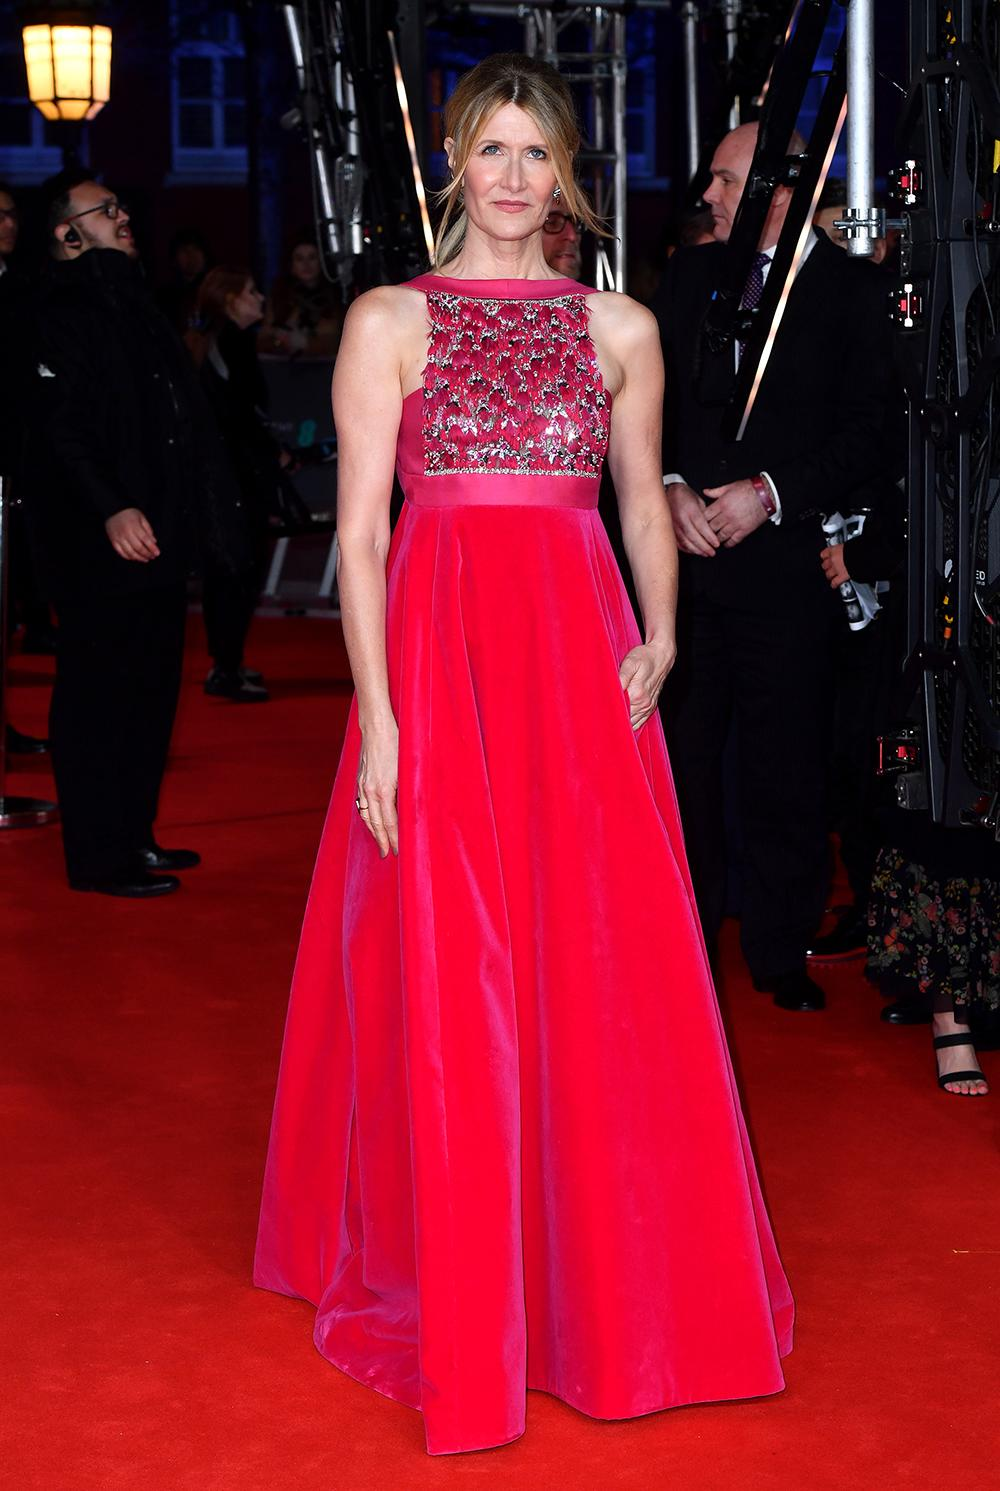 Laura Dern wore a beautiful Valentino gown in fuchsia [Image: PA]